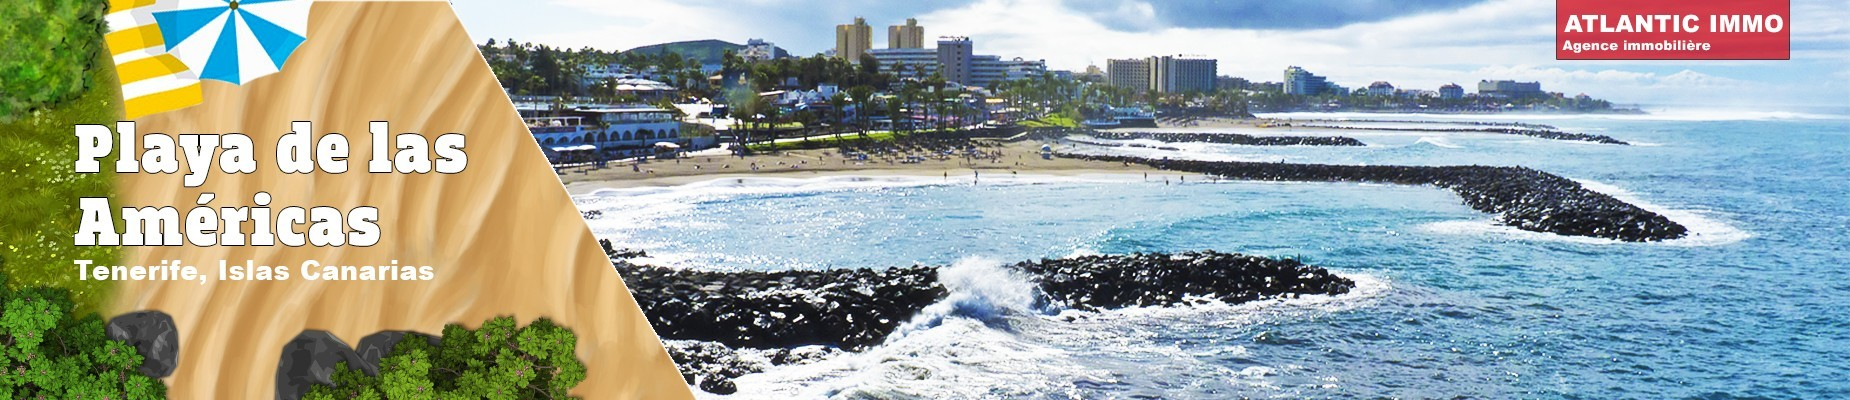 Atlantic Immo playa de las americas 2019